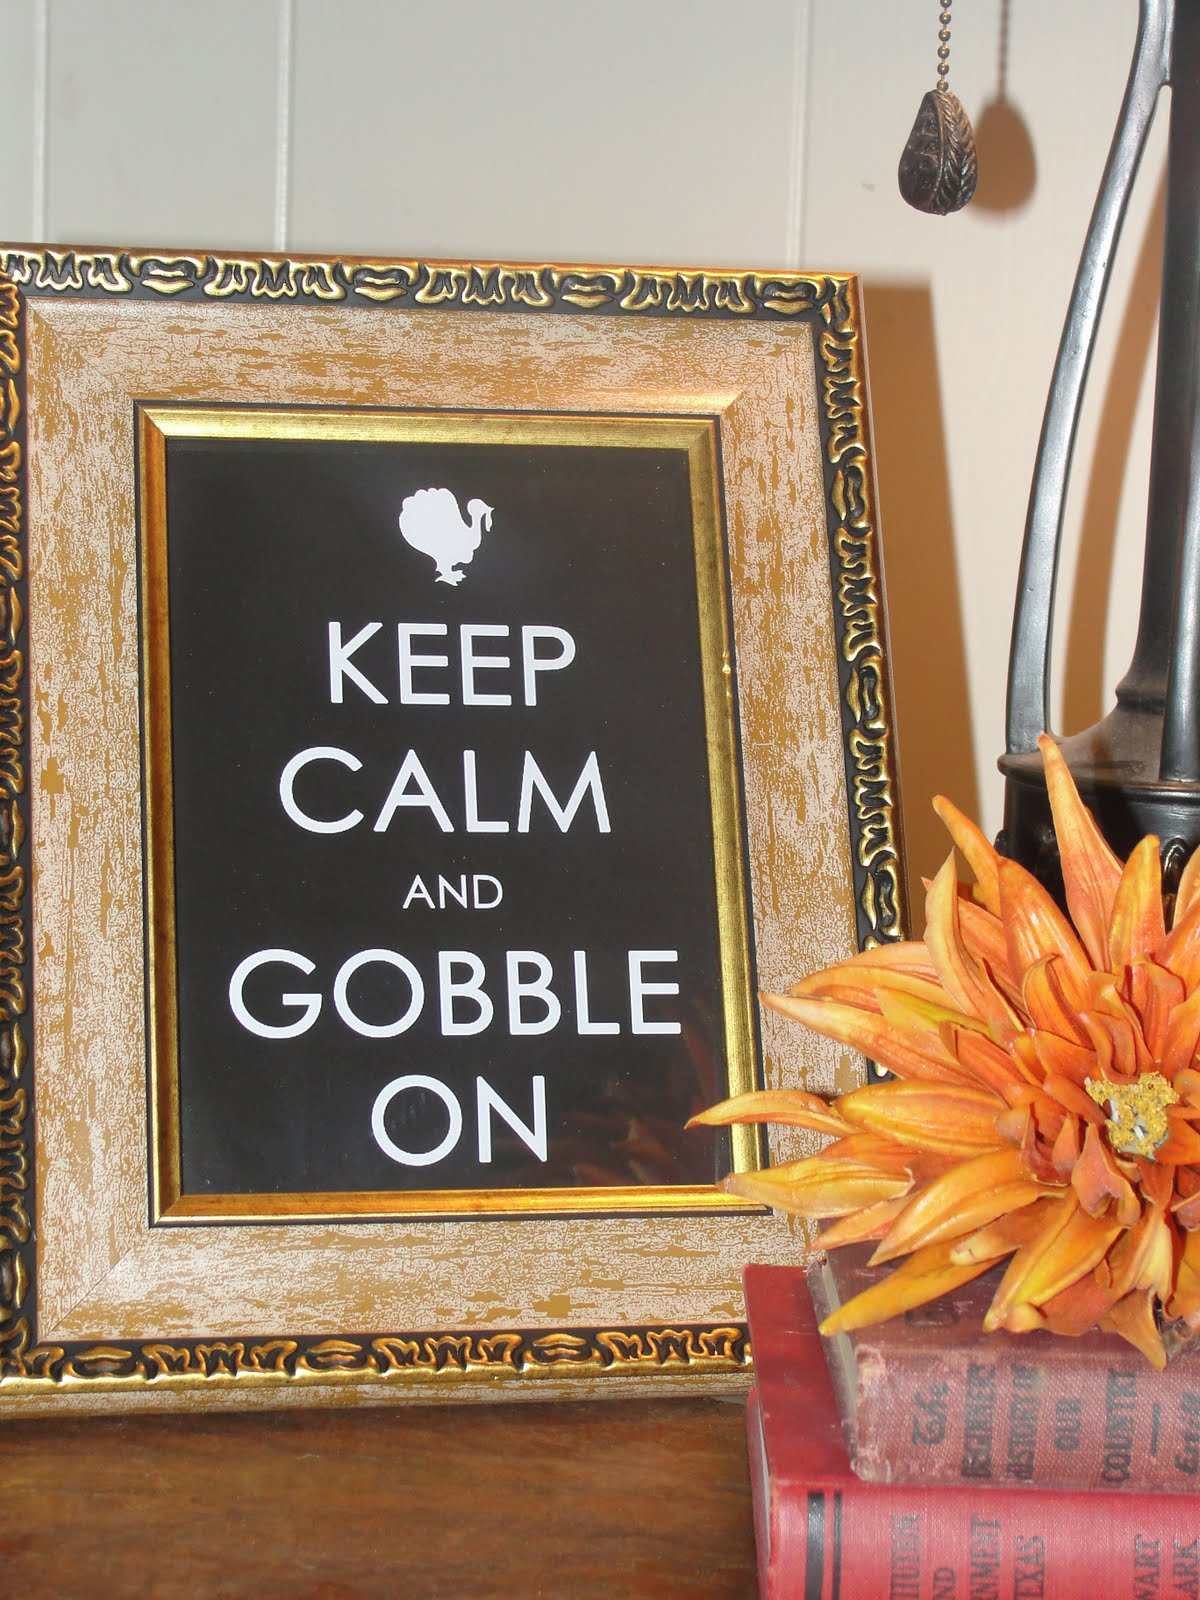 Small and Simple Things. 1200 x 1600.Happy Thanksgiving Messages To Employees